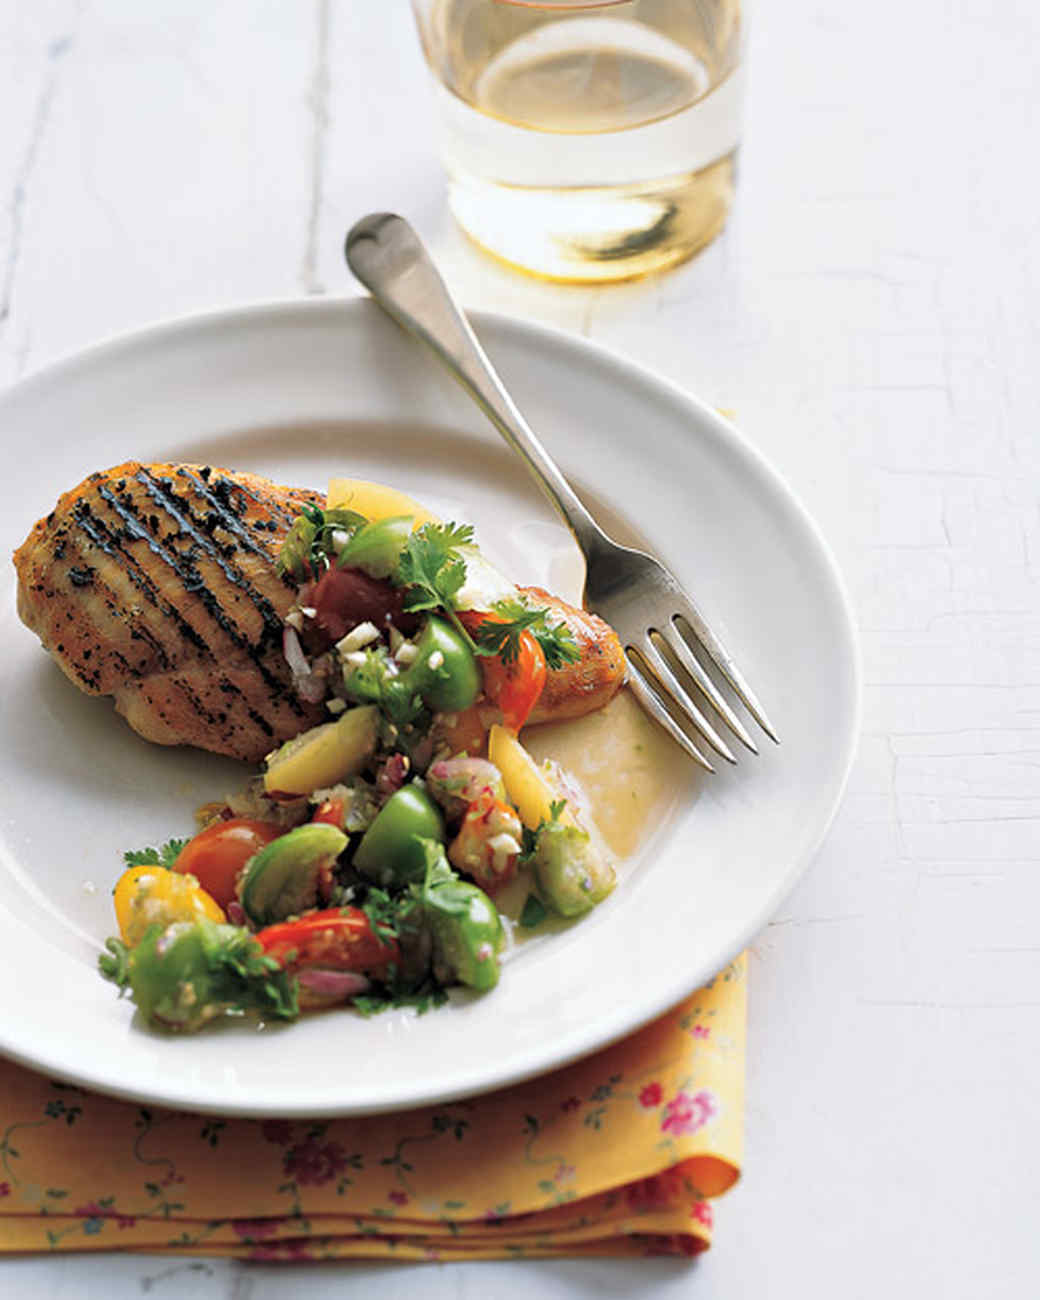 Grilled Chicken with Tomatillo-Tomato Salsa